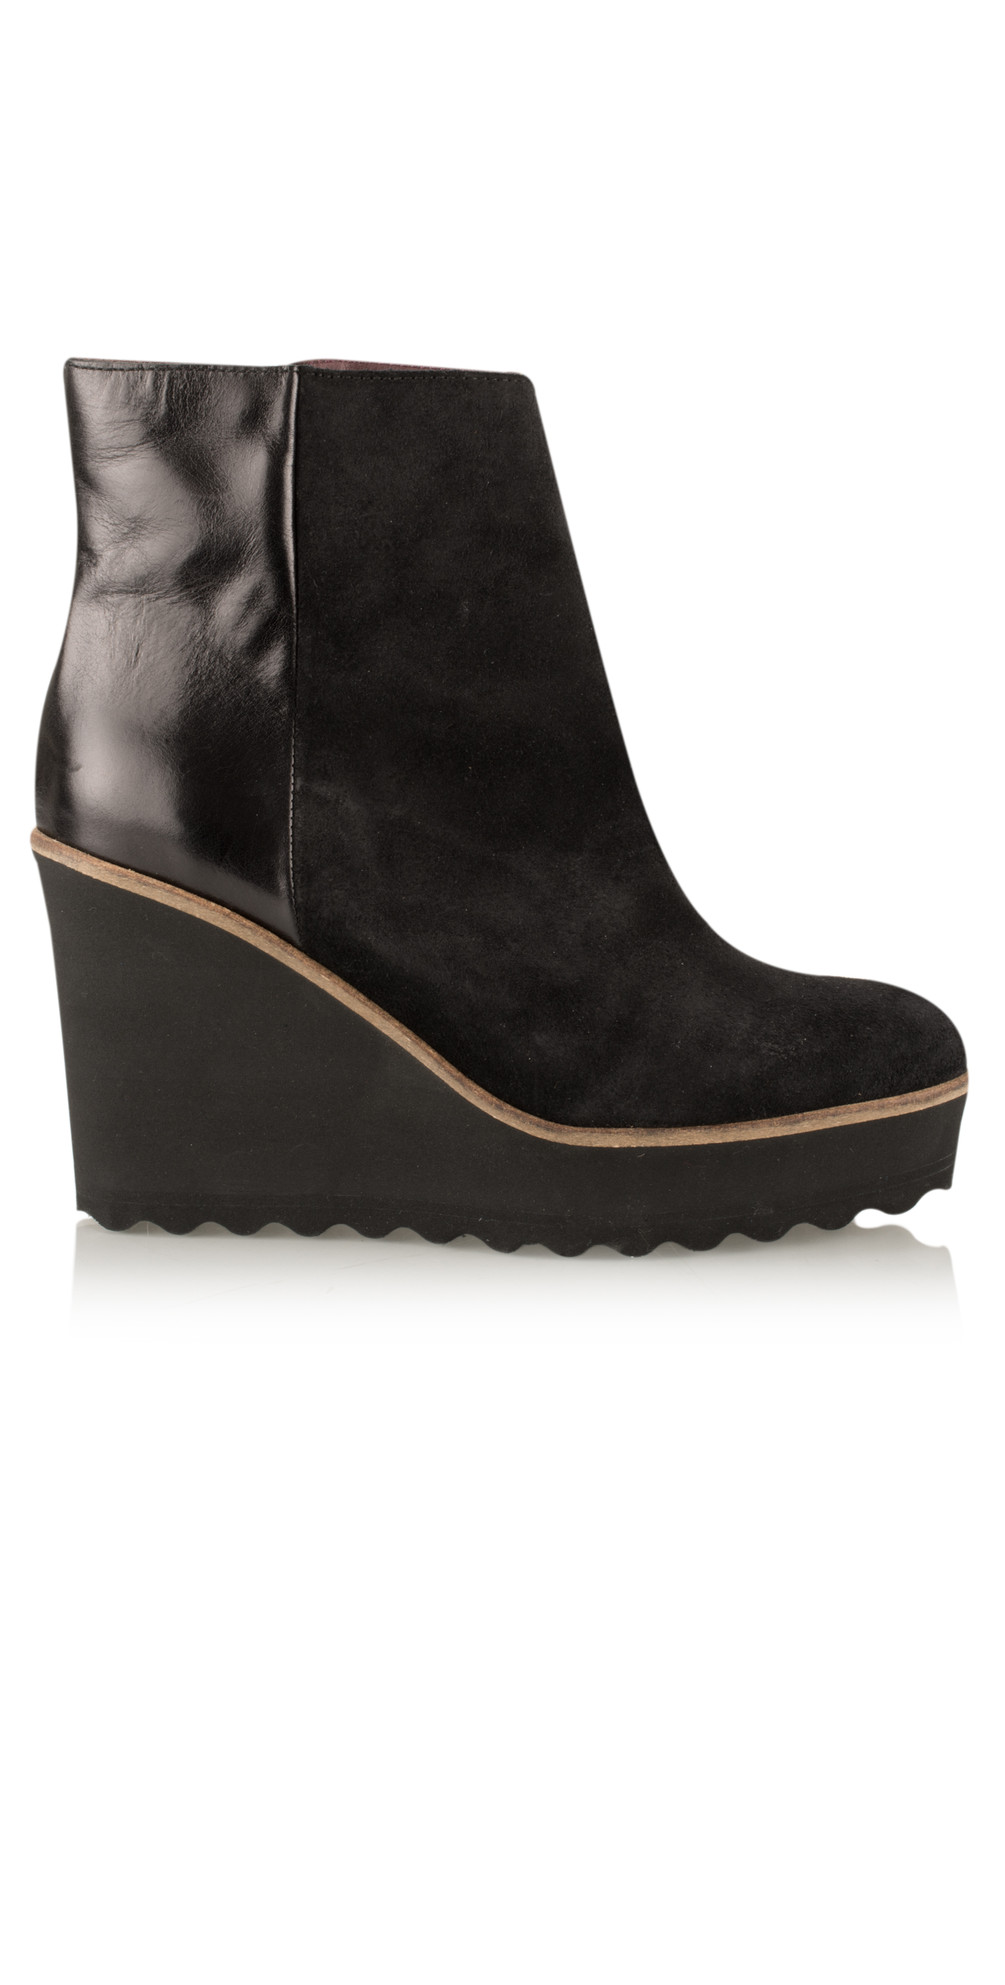 1eff3b25d04 Black Maree Wedge Ankle Boot